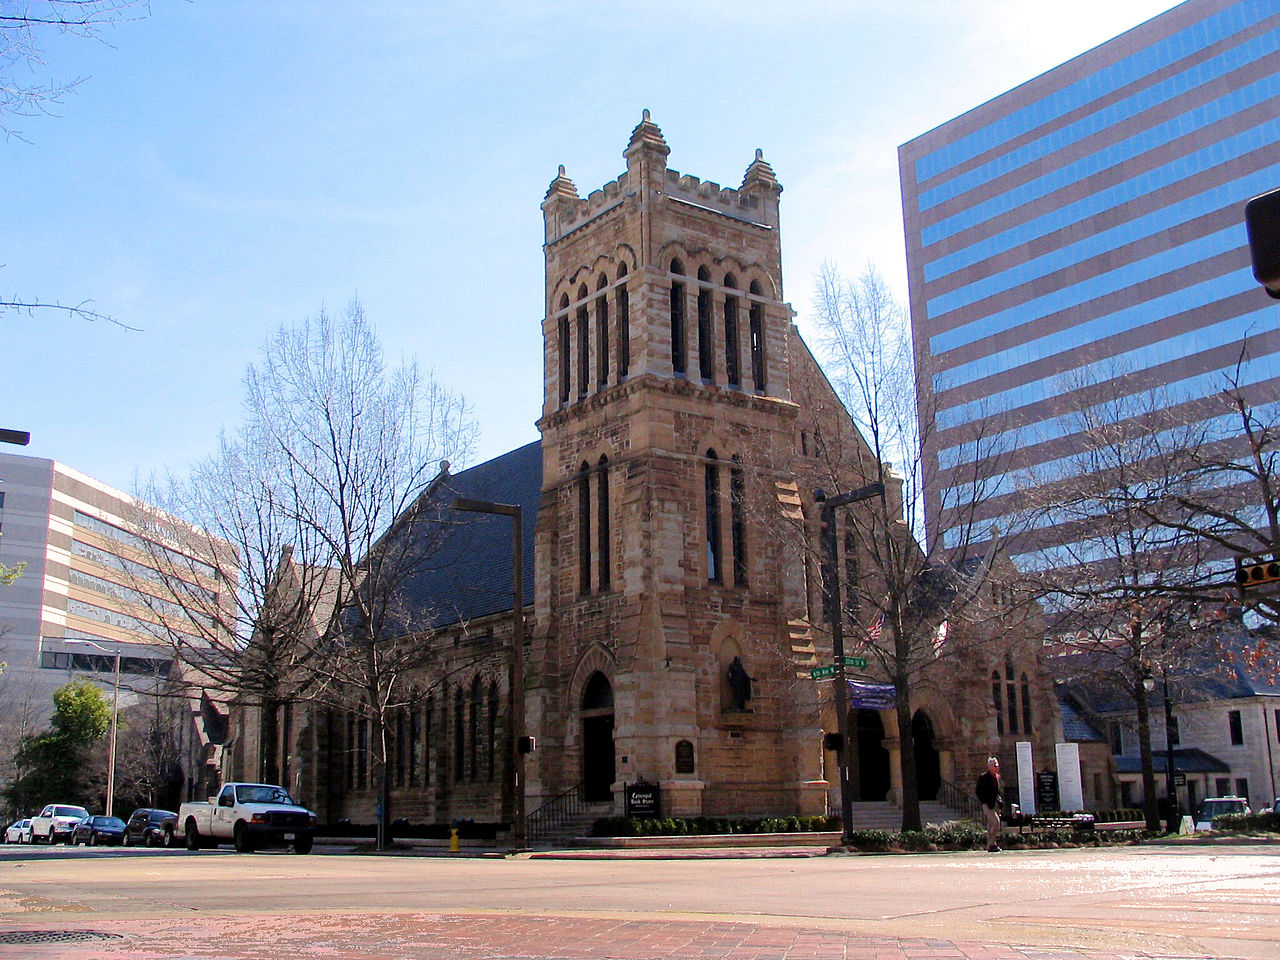 The Cathedral Church of the Advent was built in 1885 and is one of the oldest buildings in the city.